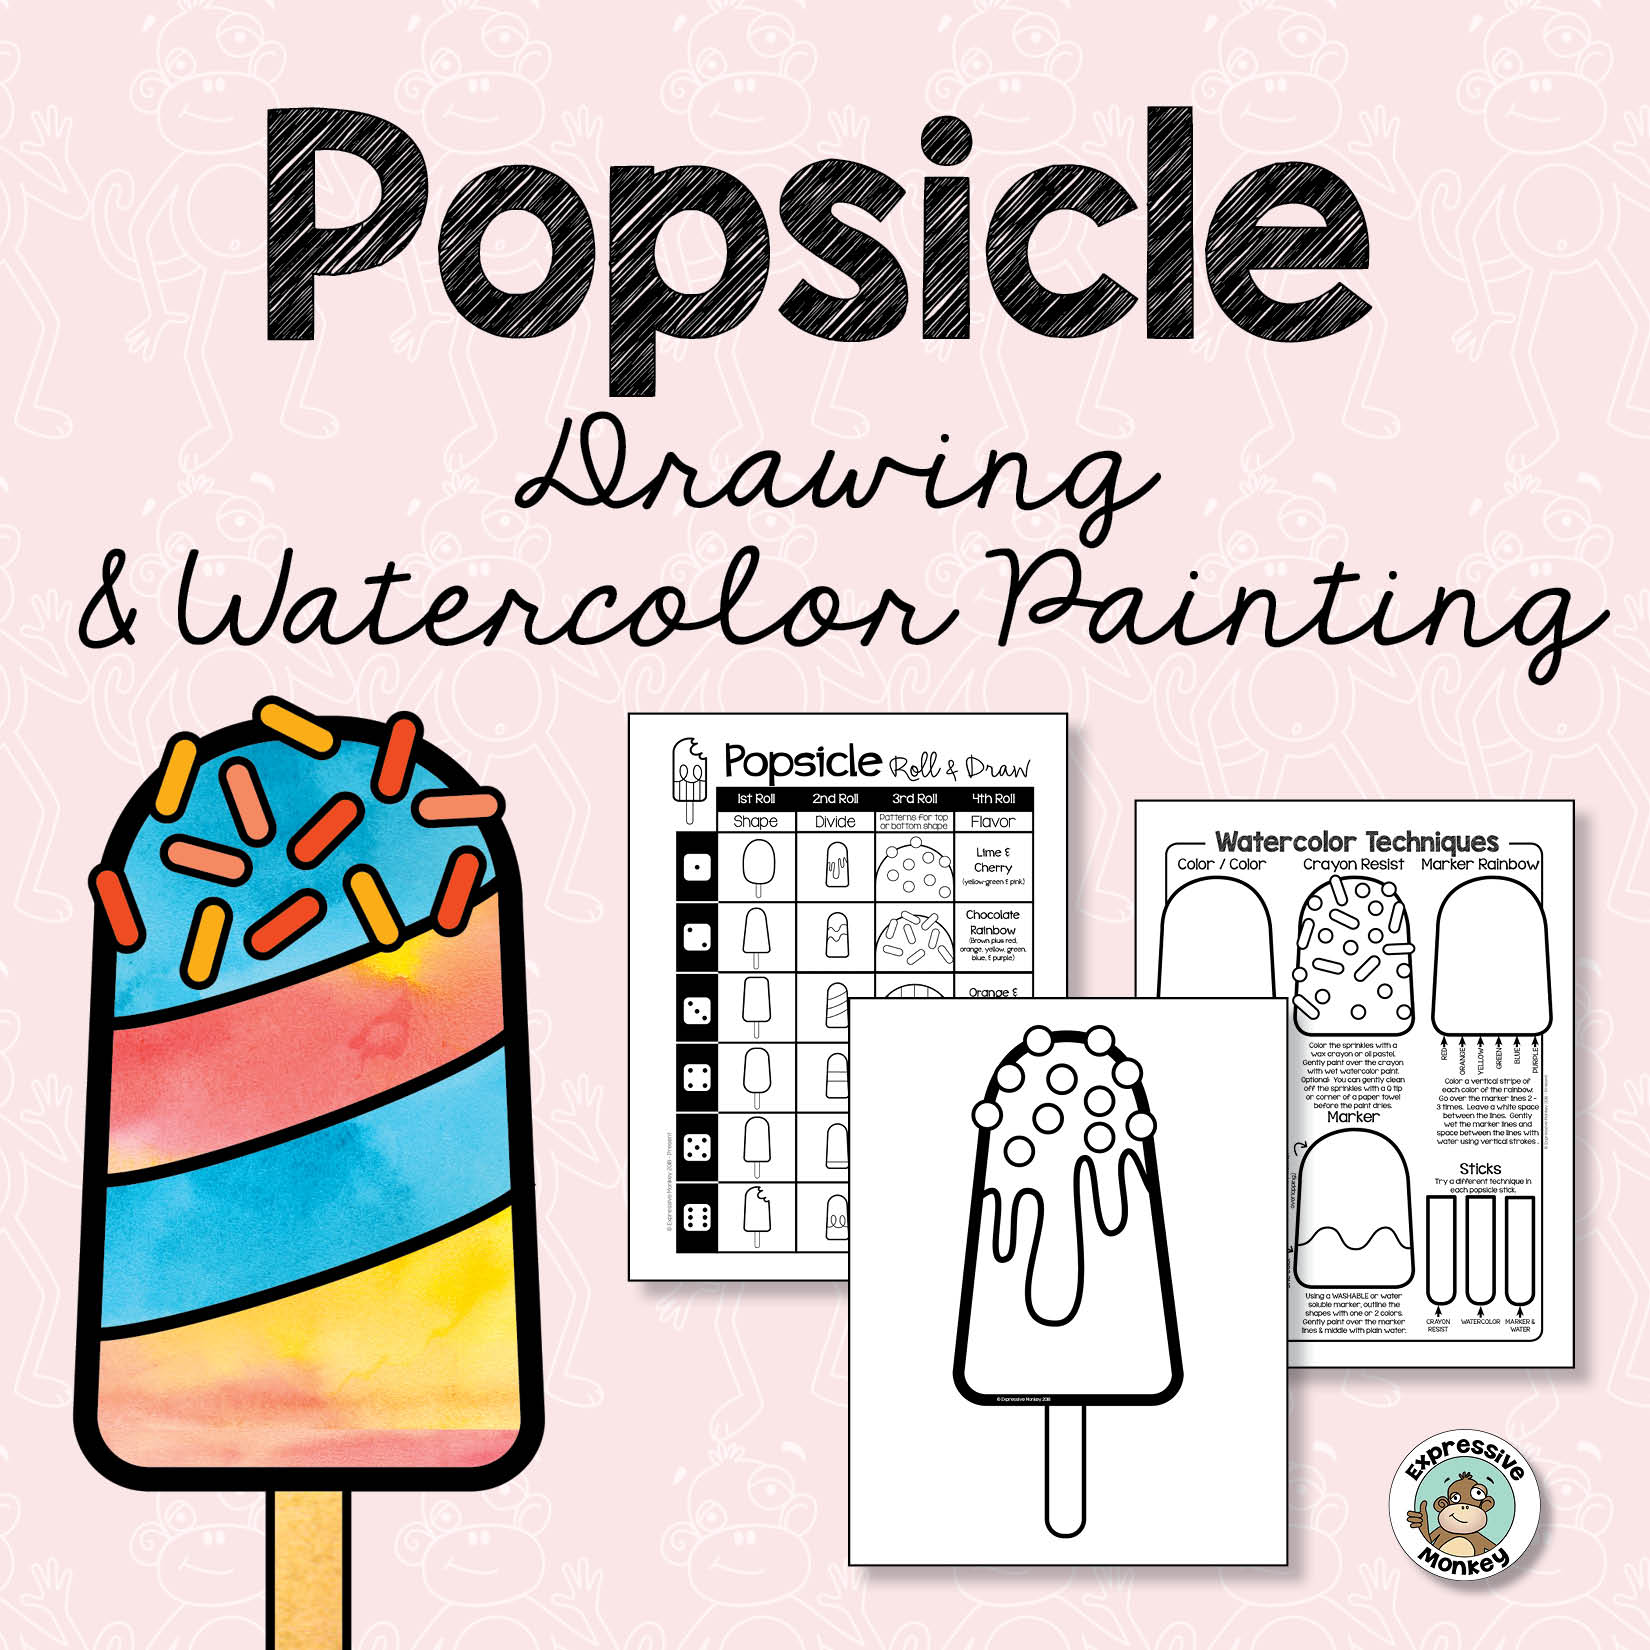 Popsicle Drawing & Watercolor Painting